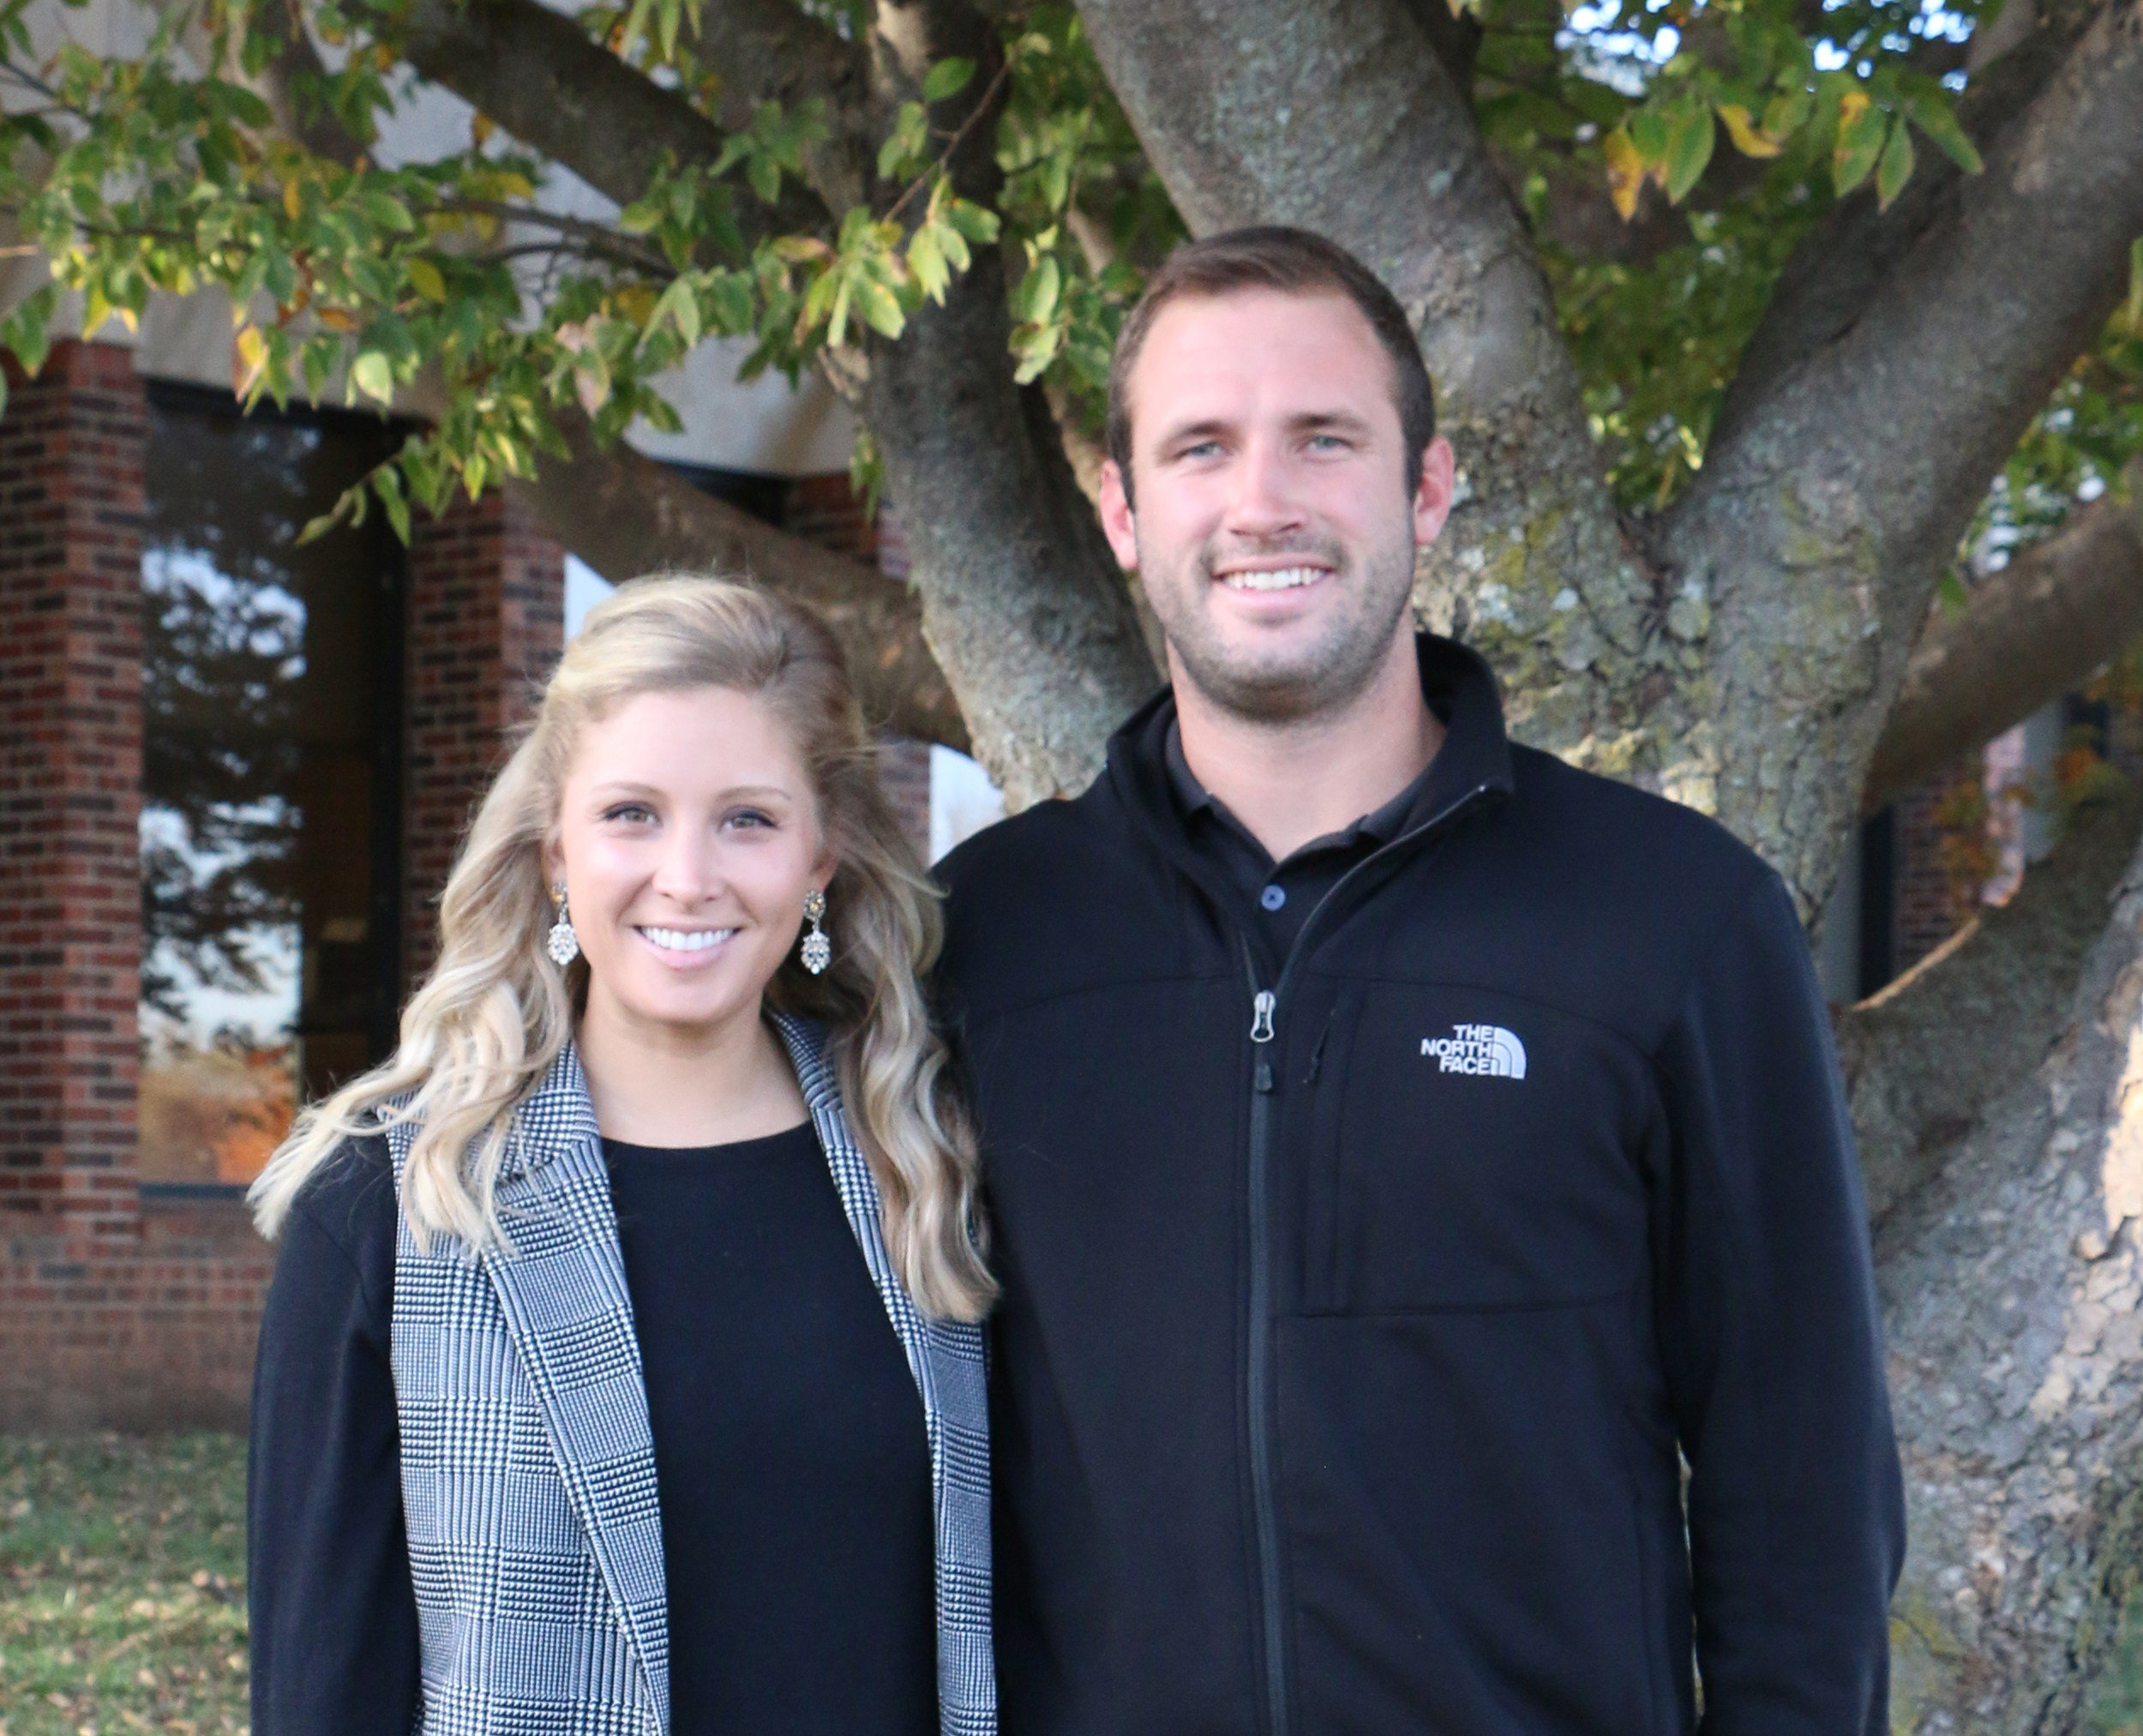 FSCC Head Football Coach Kale Pick poses with his wife, Geneva.